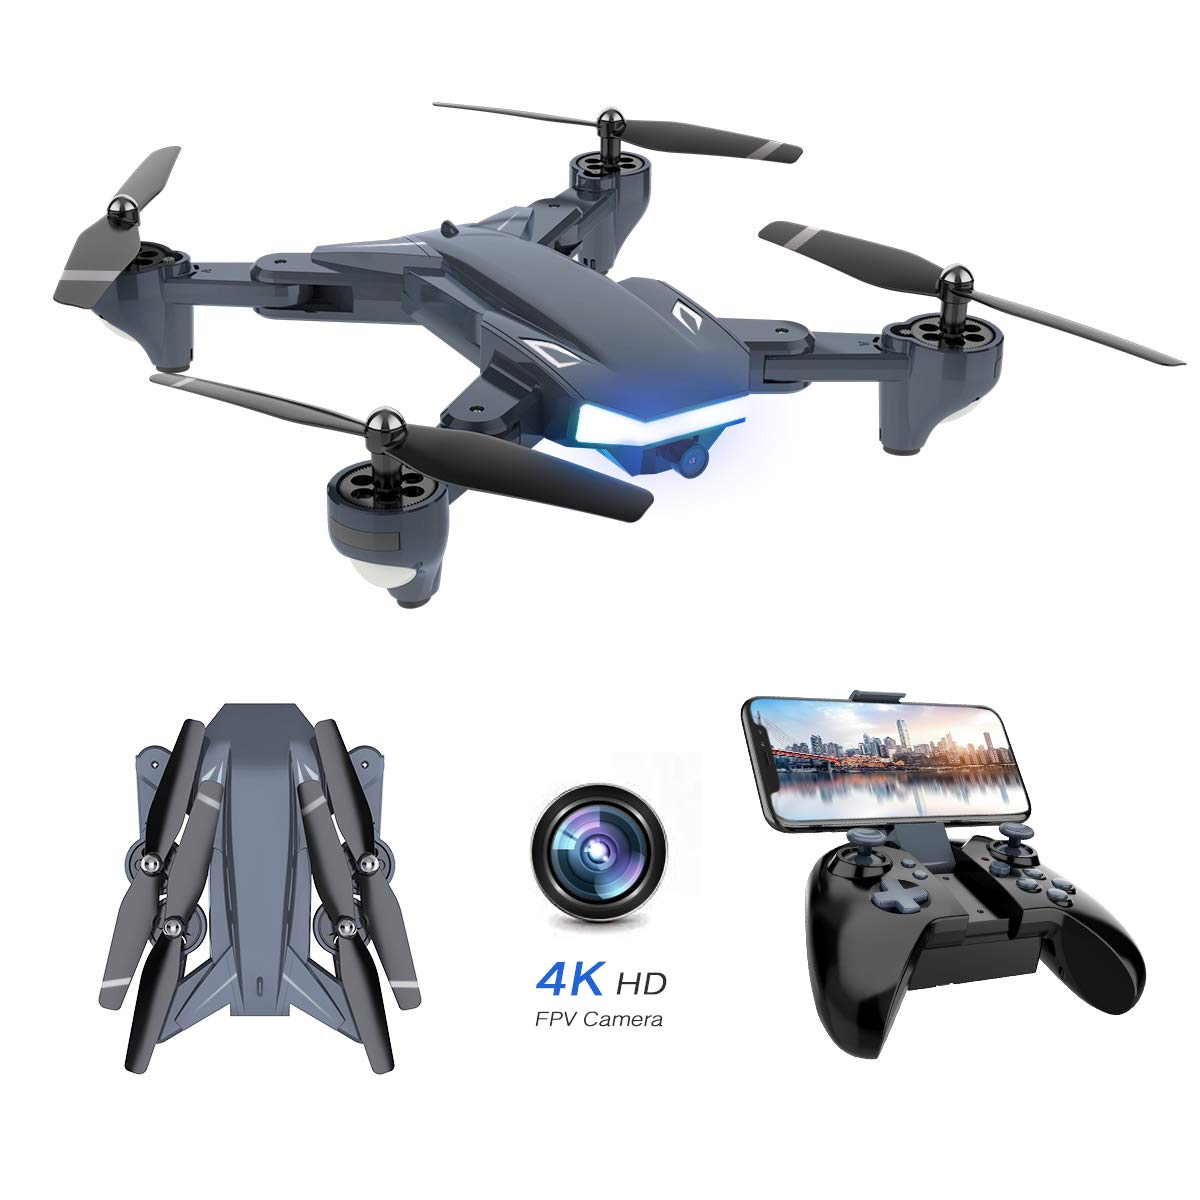 Supkiir Foldable RC Quadcopter with 4K HD Camera Image Tracking Gesture Control Portable Aircraft Toy for Beginners with Gravity Control WiFi FPV Drone Custom Flight Path